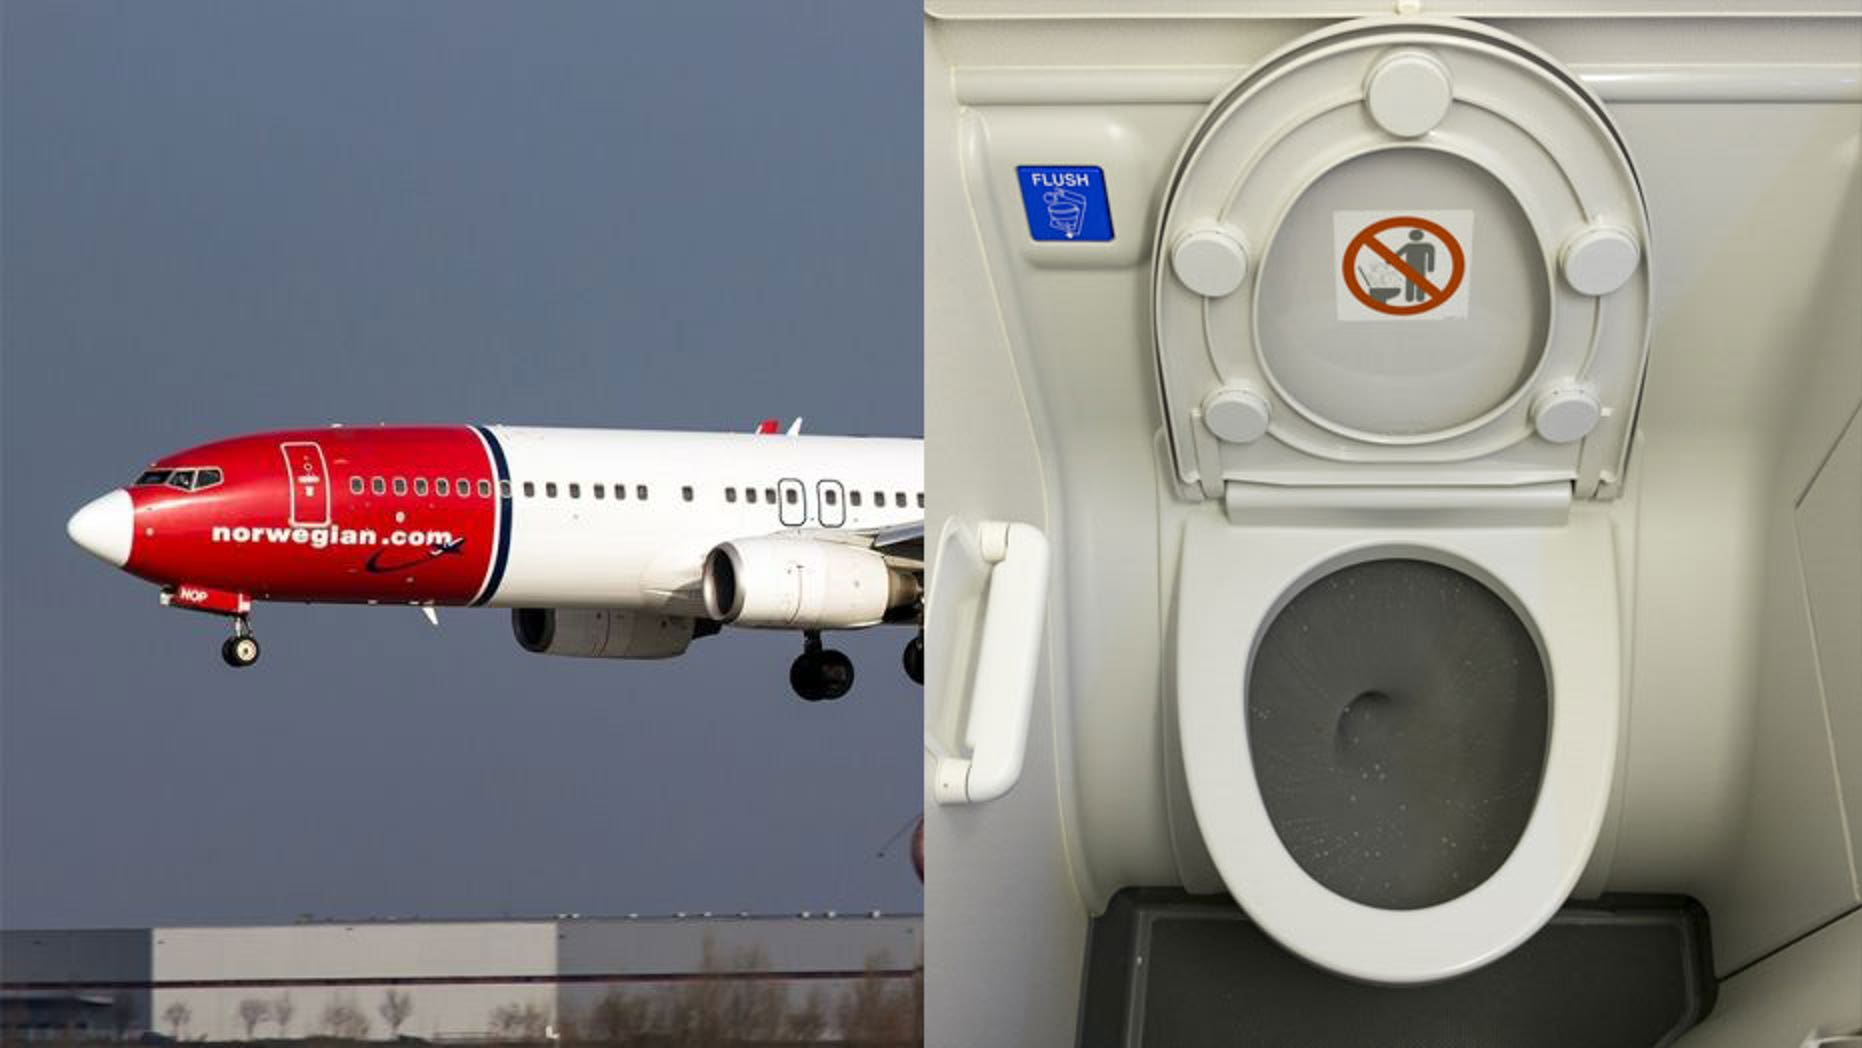 A Norwegian Air flight was forced to turn around shortly after takeoff due to a problem with the toilets, which couldn't be fixed by the 85 plumbers on board.